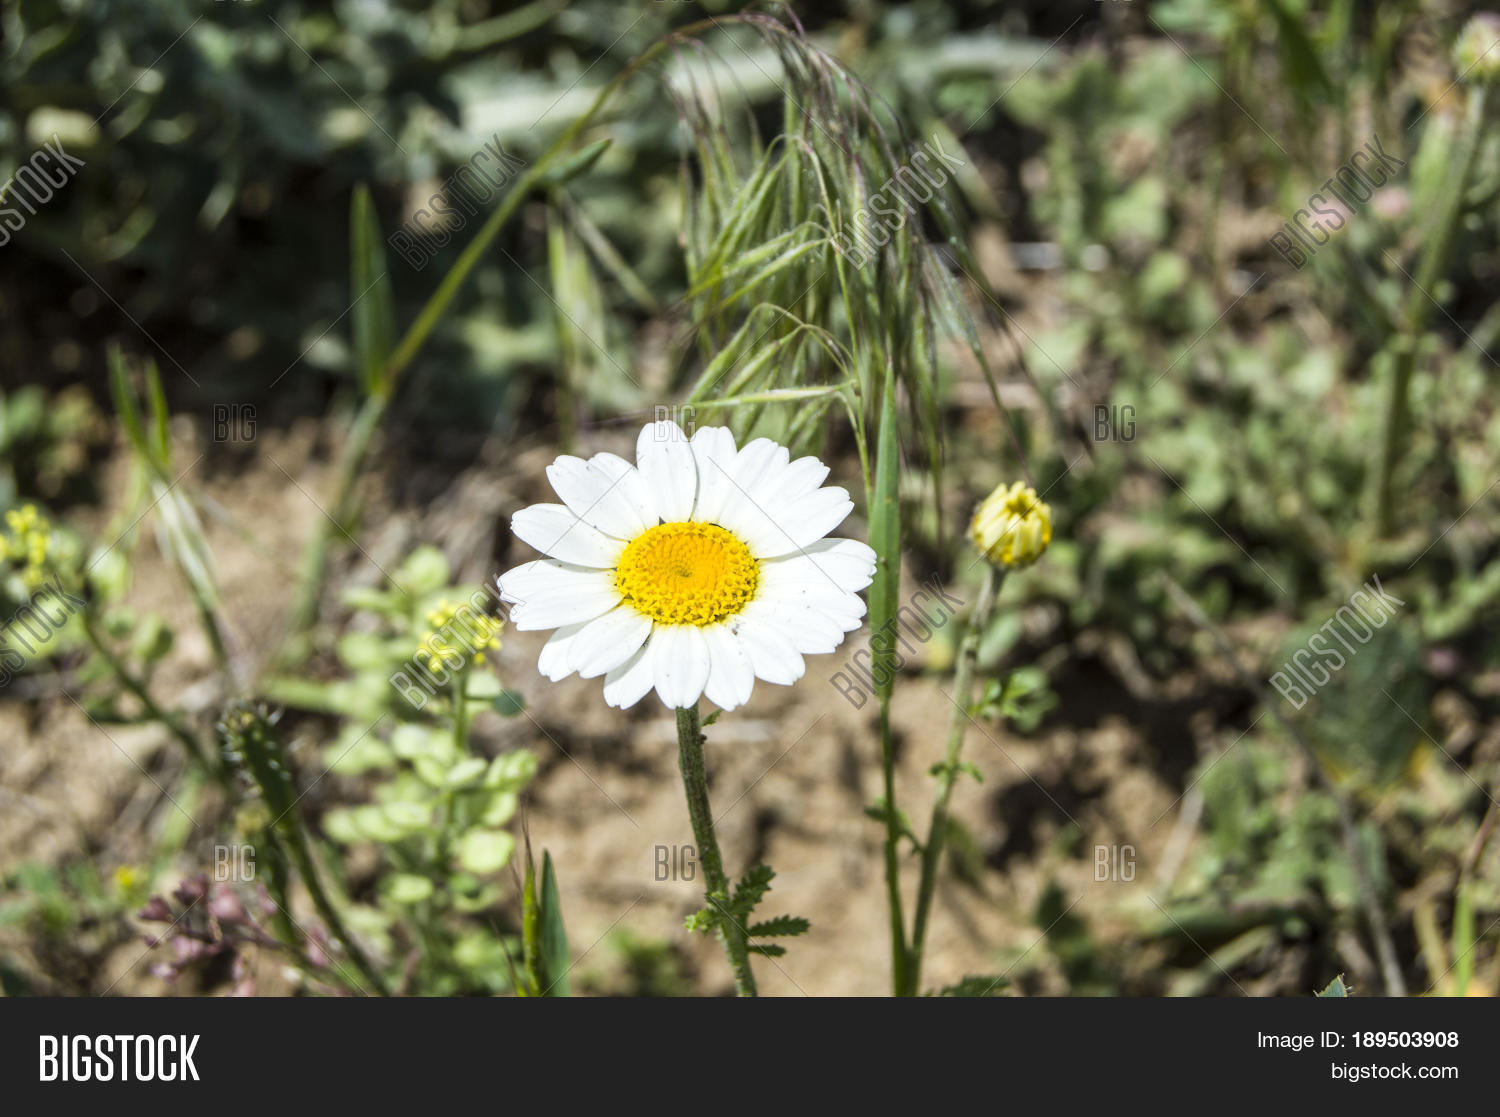 White yellow daisies image photo free trial bigstock white and yellow daisies that grow in natural environment daisies with daisy flowers do izmirmasajfo